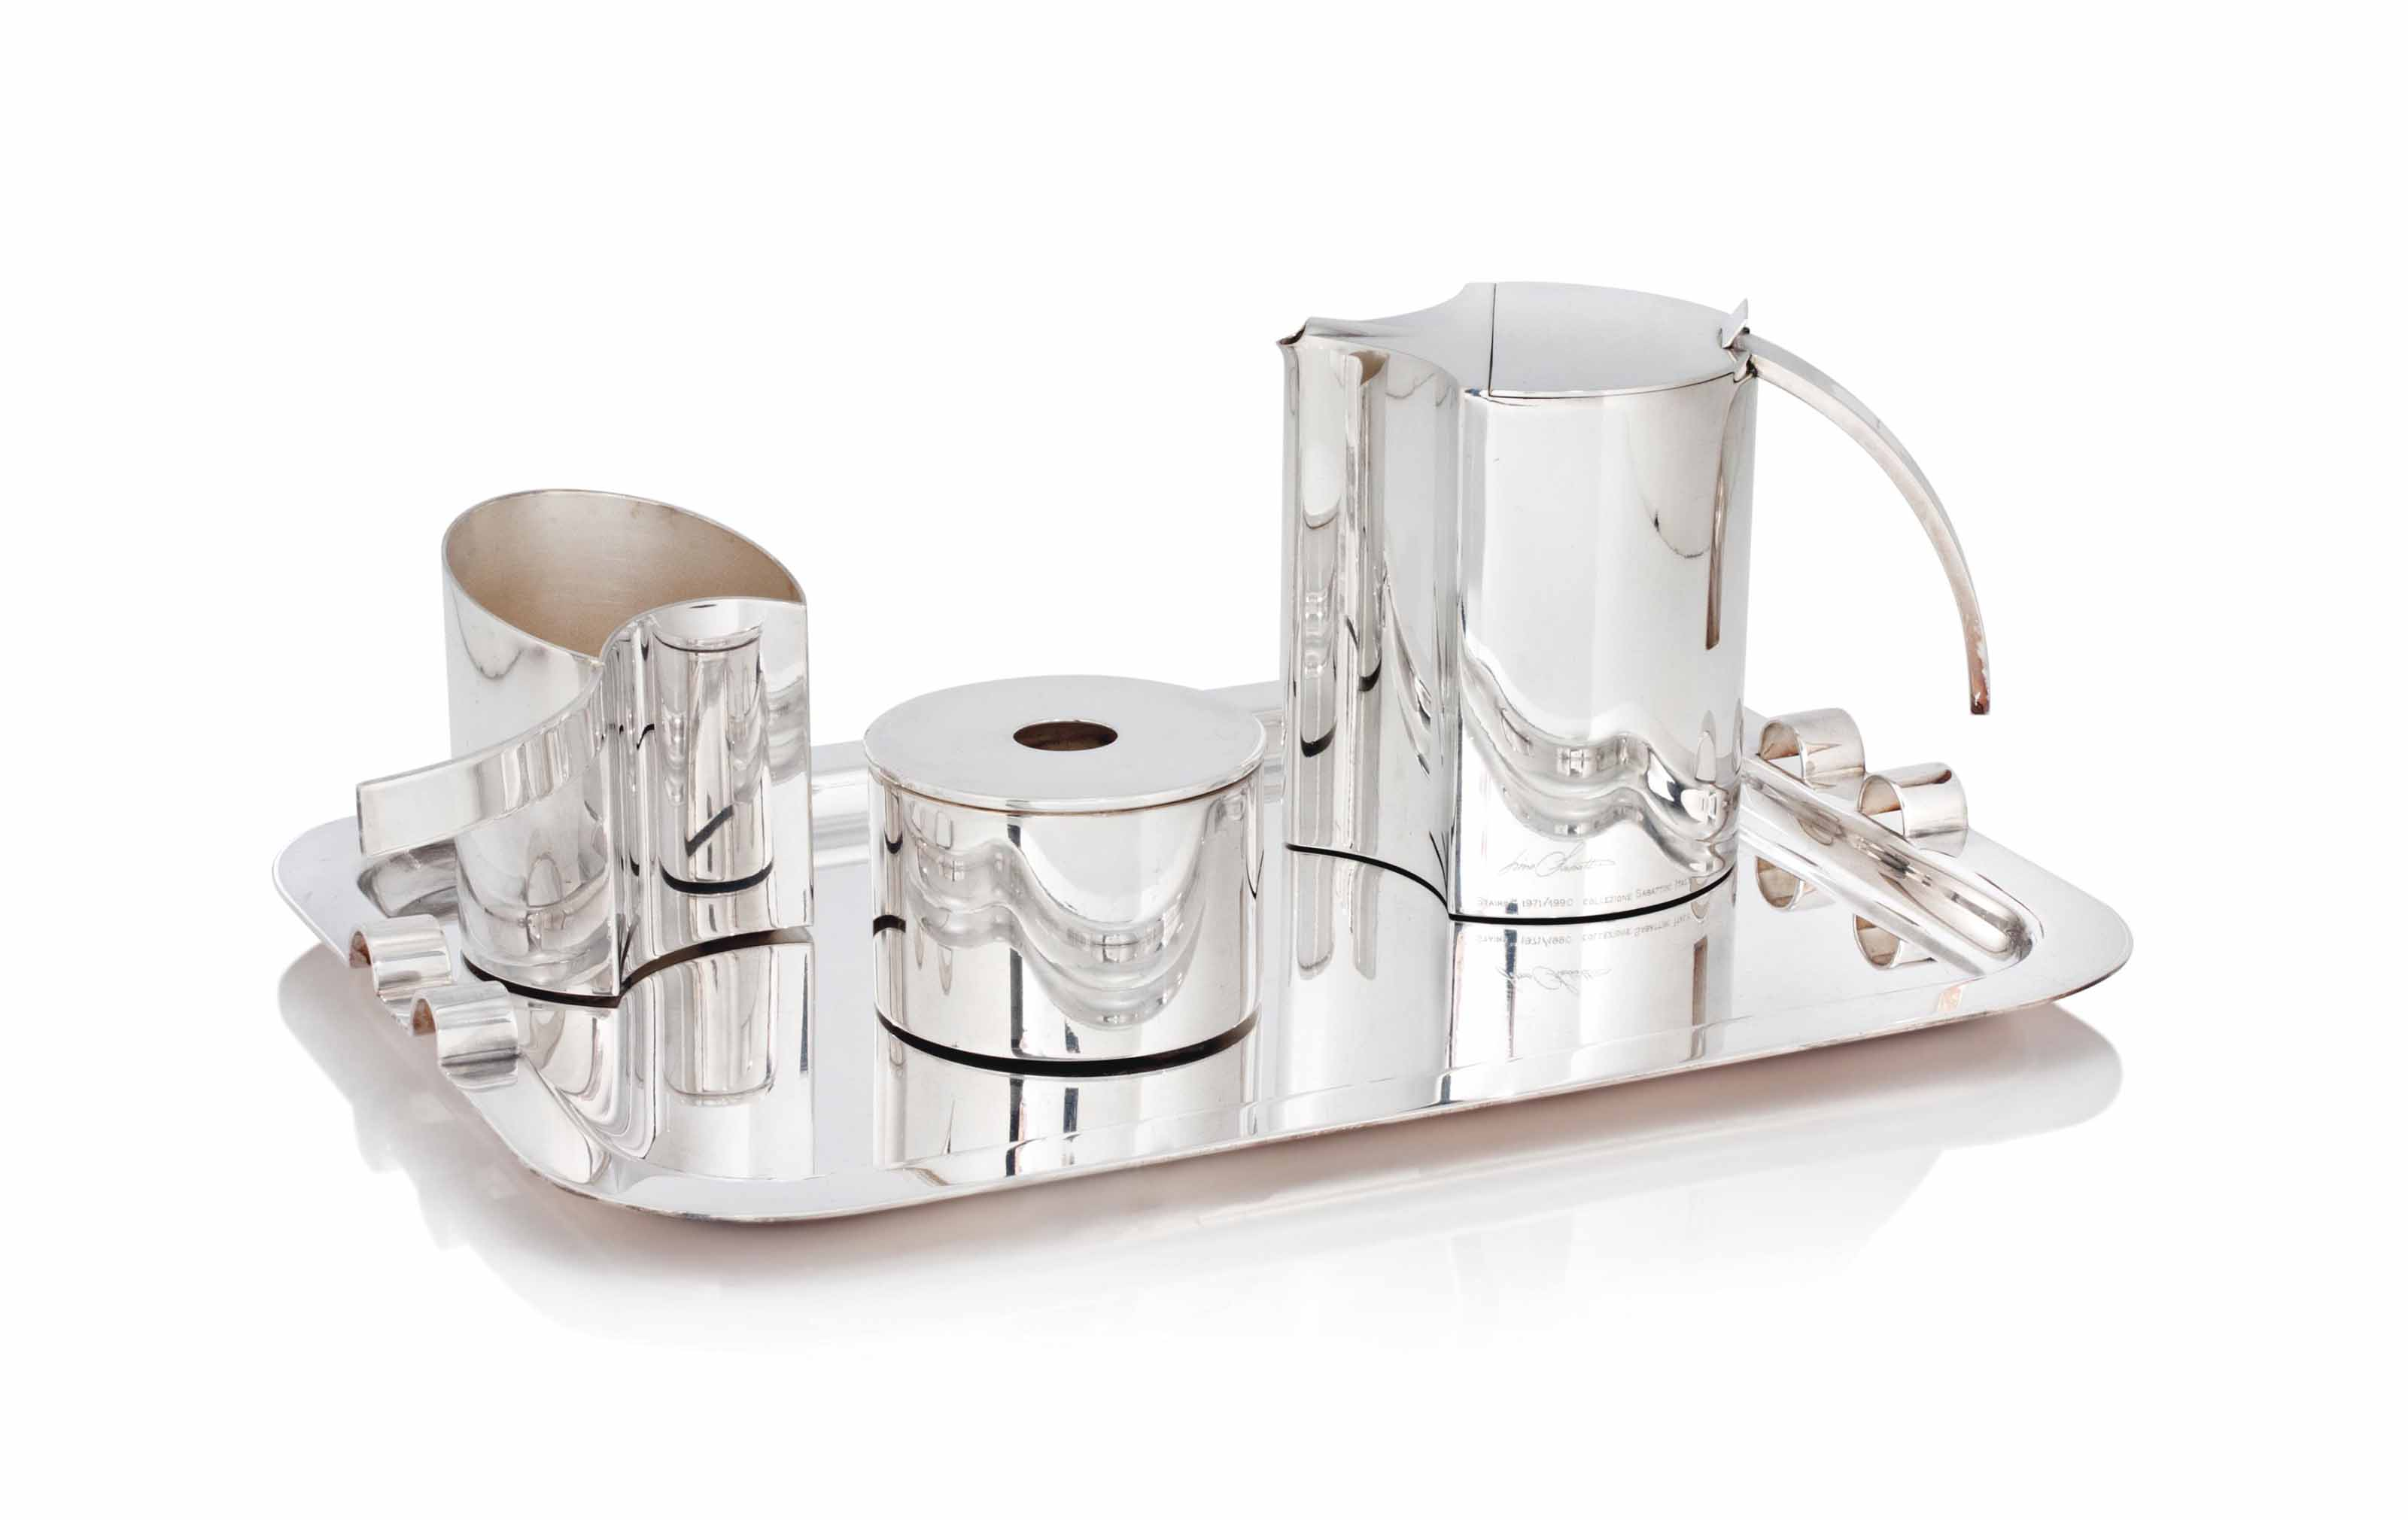 A LINO SABATTINI (B.1925) SILVER PLATED 'STAIRS' TEA/COFFEE SET